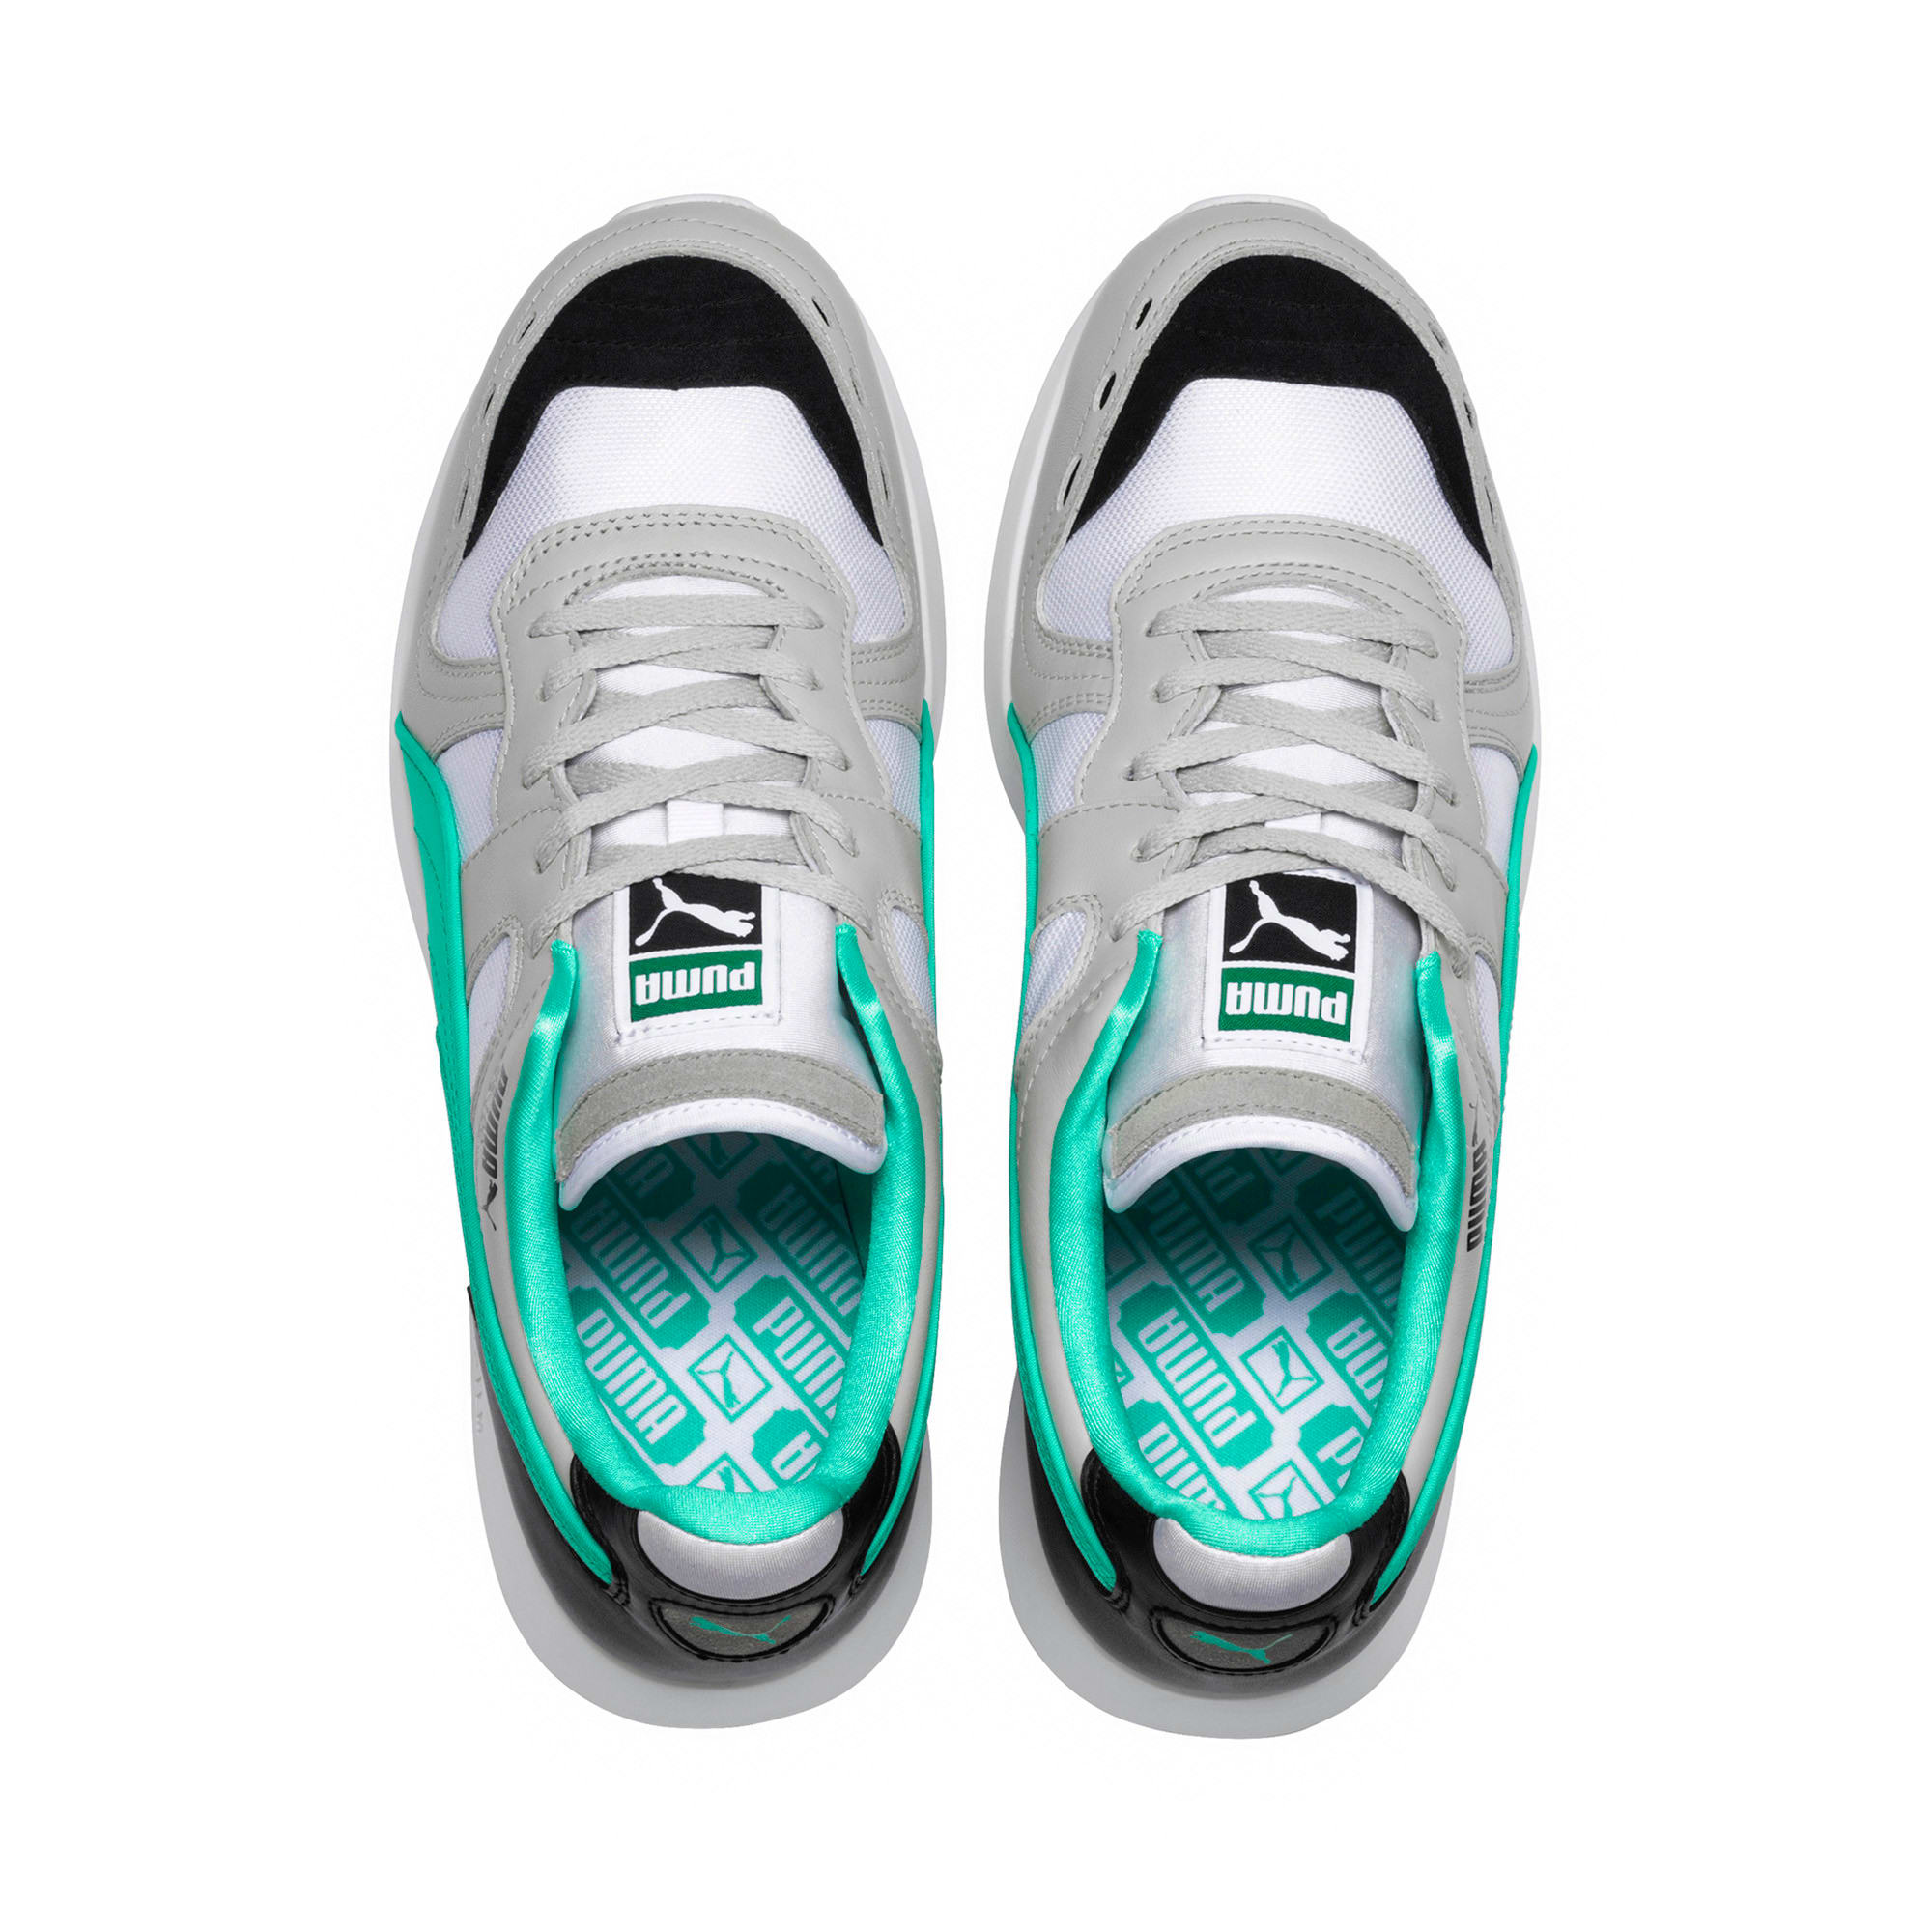 Thumbnail 6 of RS-100 RE-INVENTION, GrayViolet-BiscayGreen-White, medium-JPN